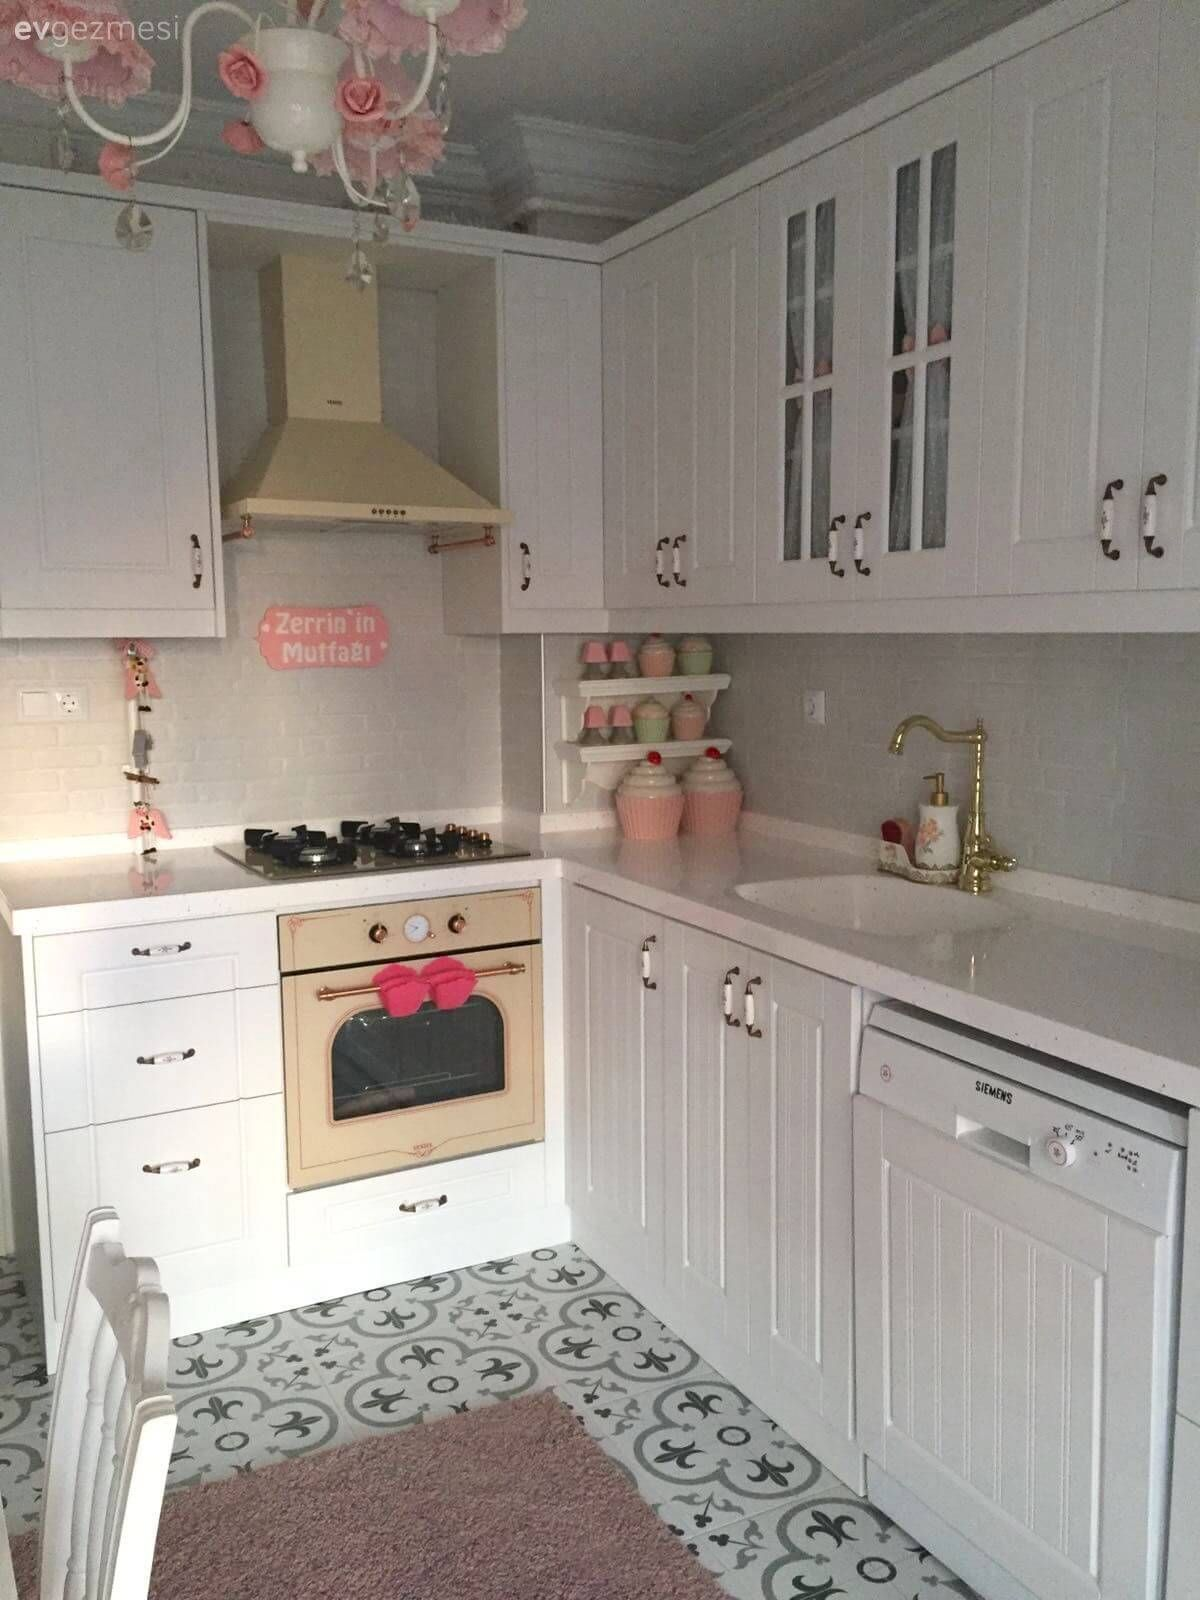 30 Nifty Small Kitchen Design And Decor Ideas To Transform Your Cooking Space Small Kitchen Decor Kitchen Design Small Kitchen Cabinets Models